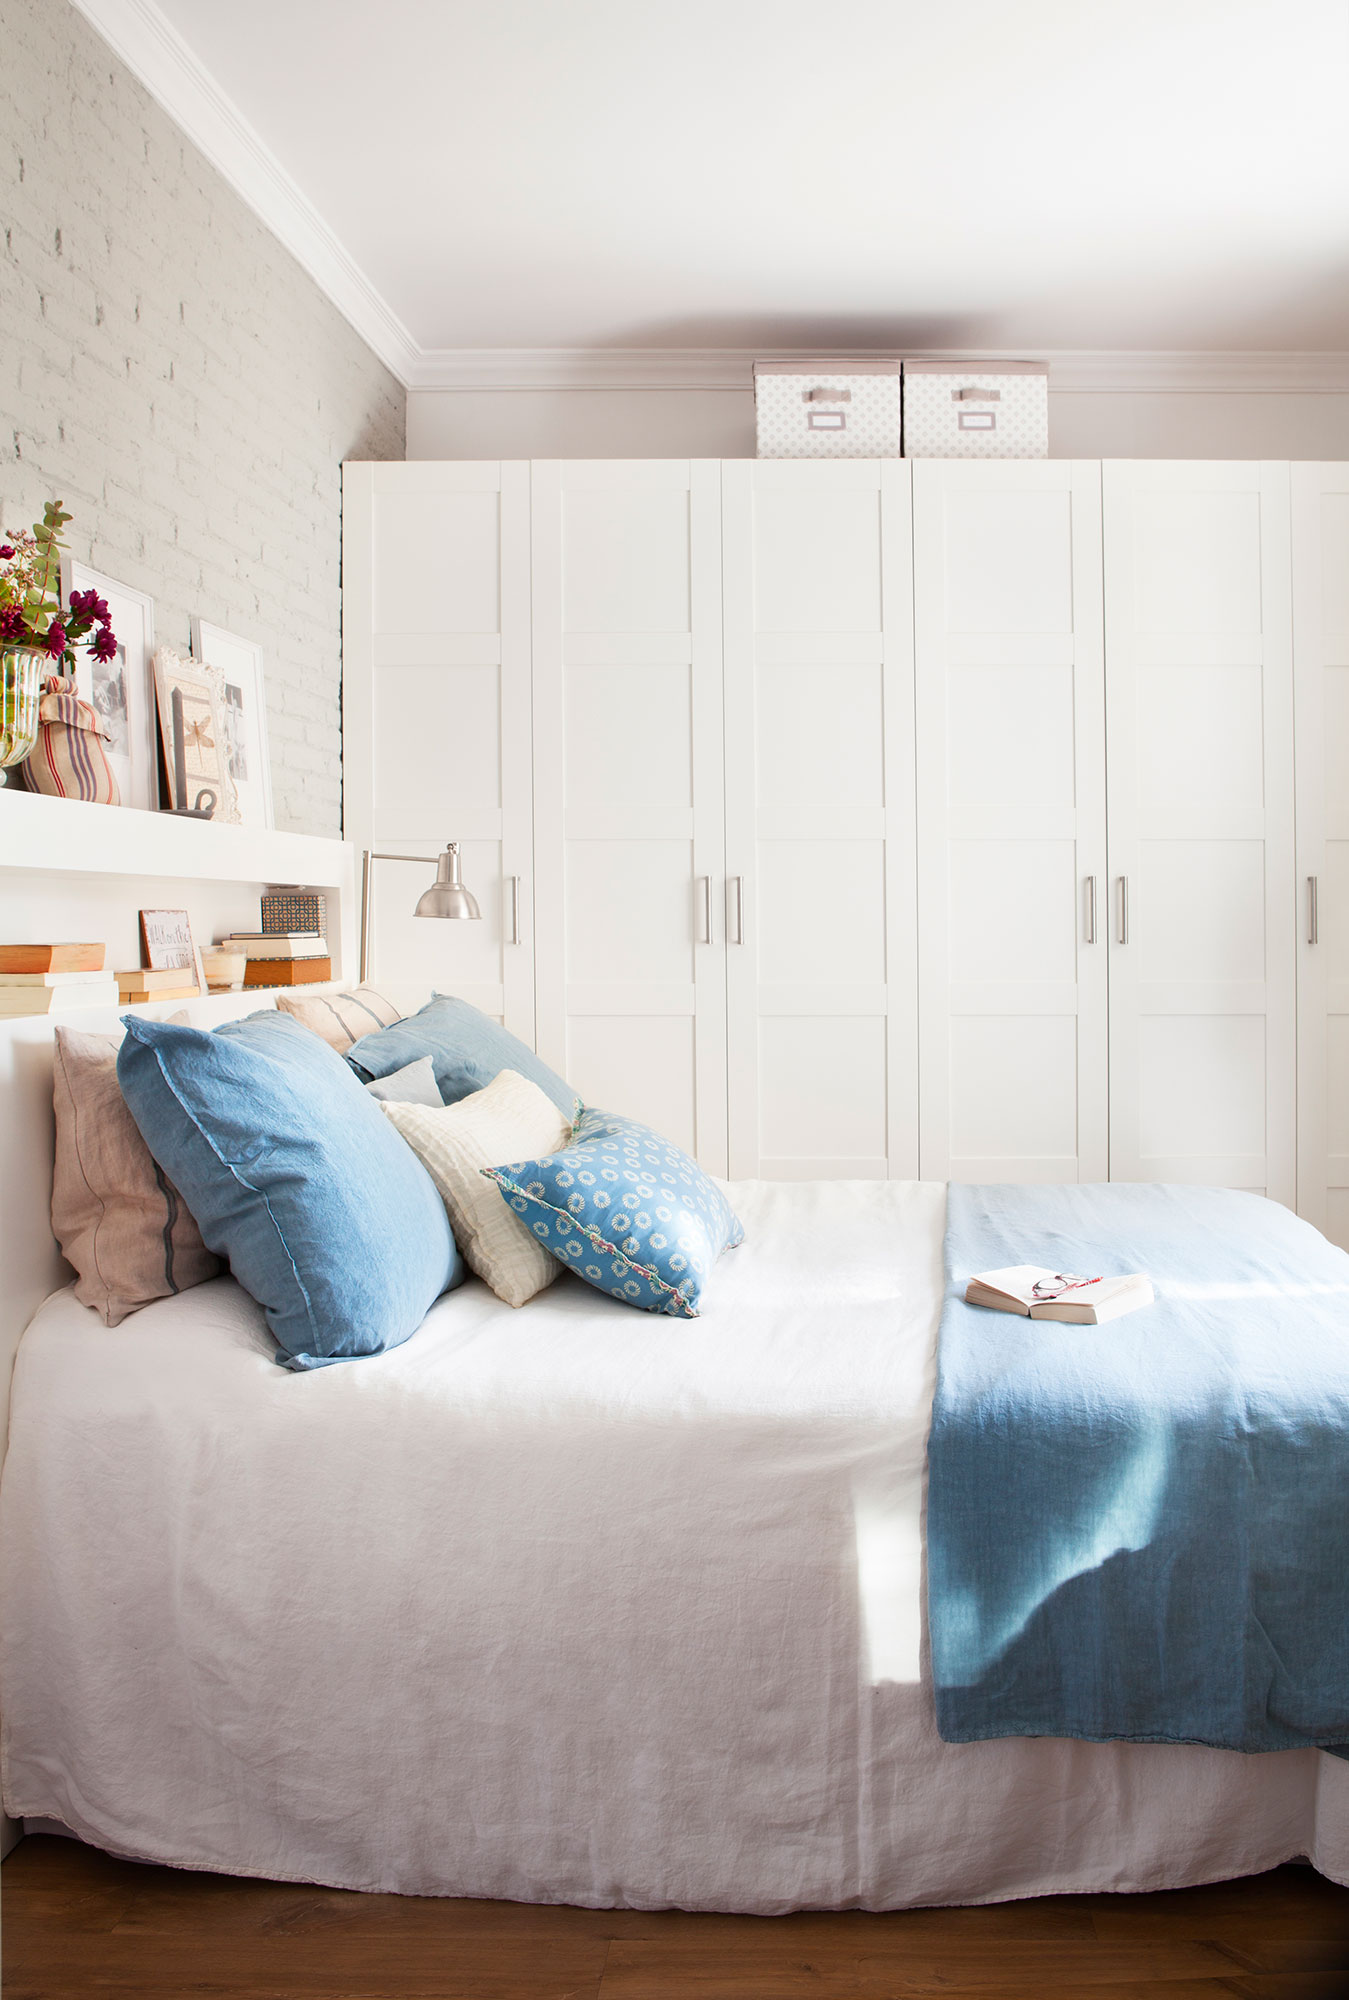 Compartir piso 10 ideas low cost para decorar tu dormitorio for Cuarto gris con blanco